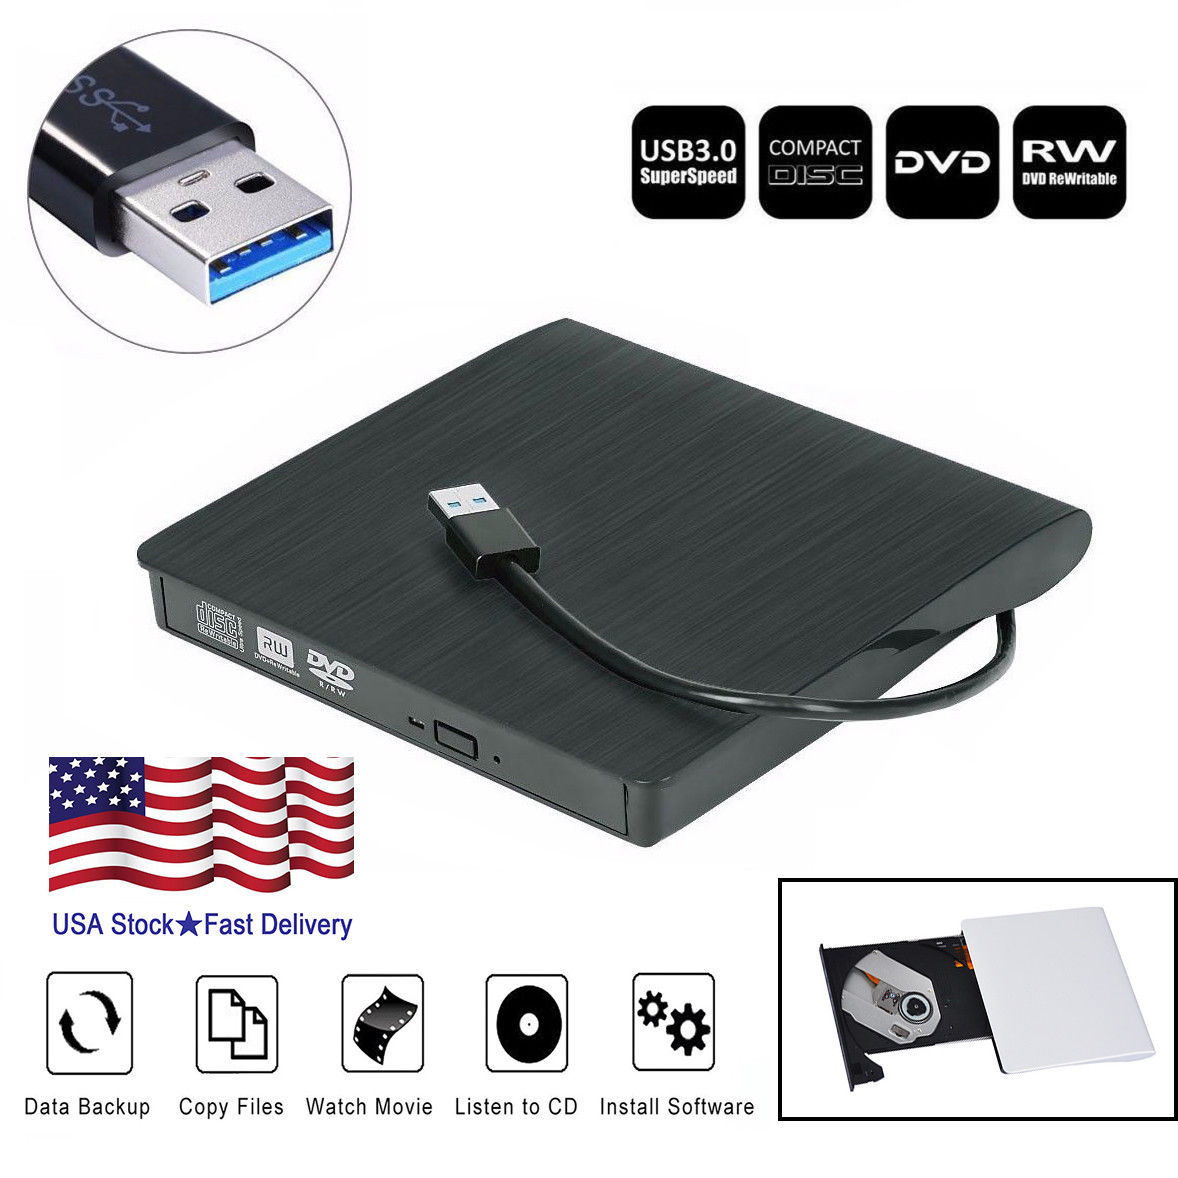 USB 3.0 External DVD Drive Slim Slot DVD VCD CD RW Drive Burner Reader Player Superdrive External Drive For l aptop Desktop PC-Black color